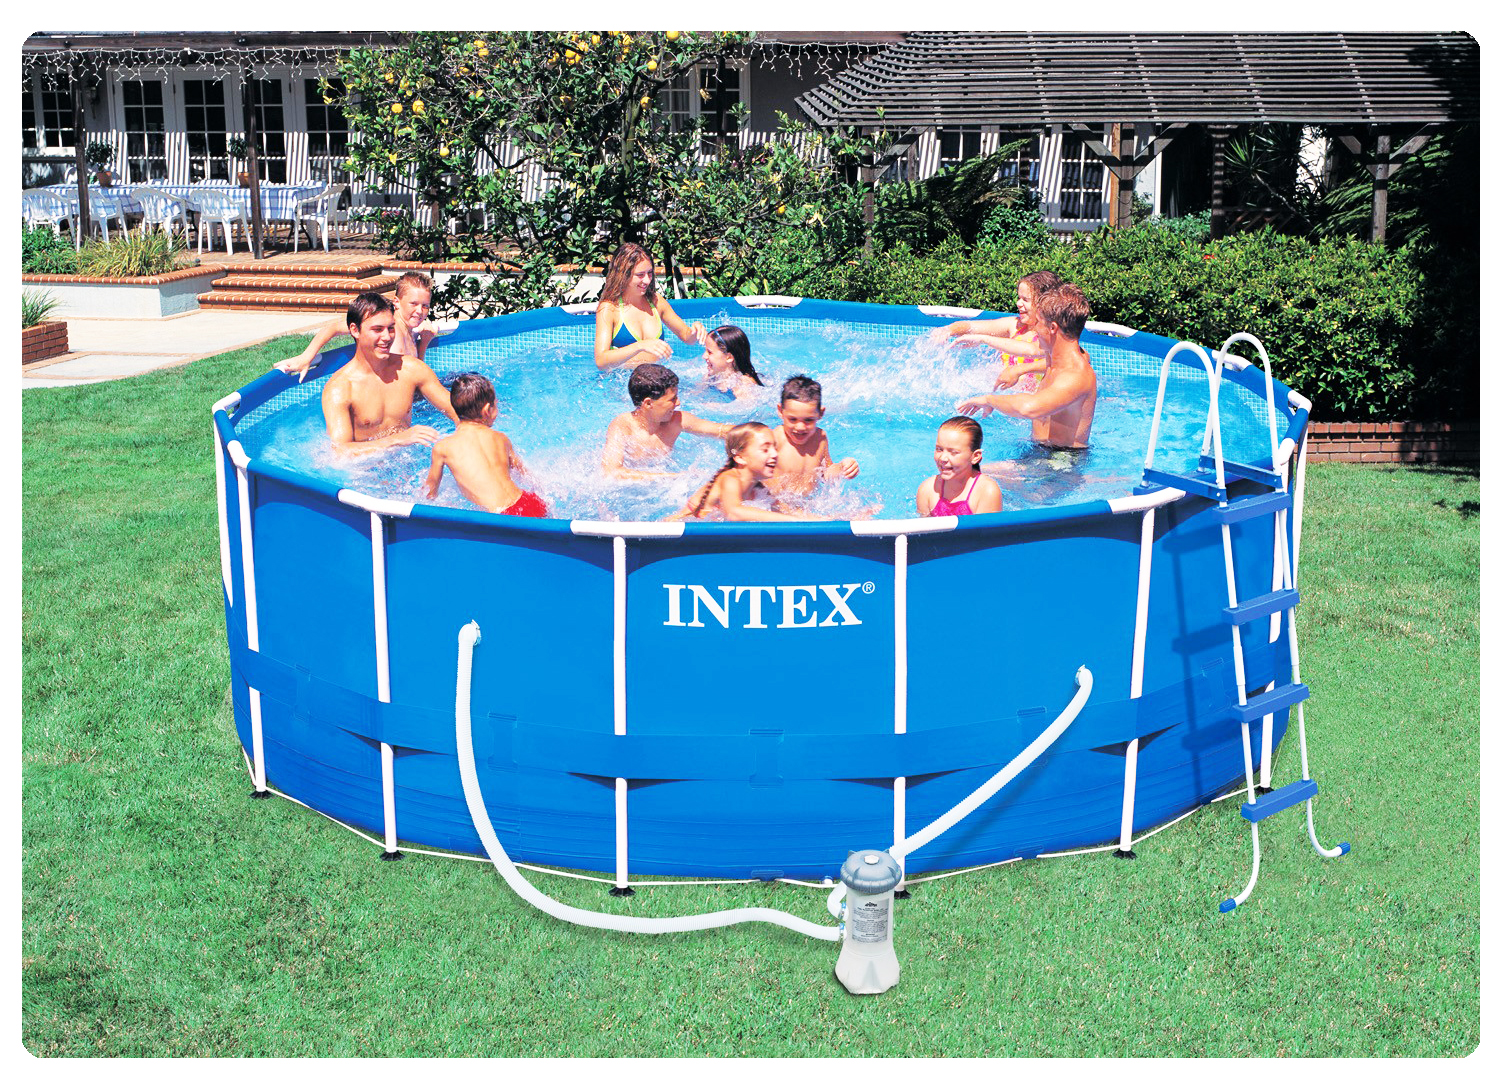 Piscina Intex 6000 Litros Medidas Piscinas Easy Set Piscinas Intex